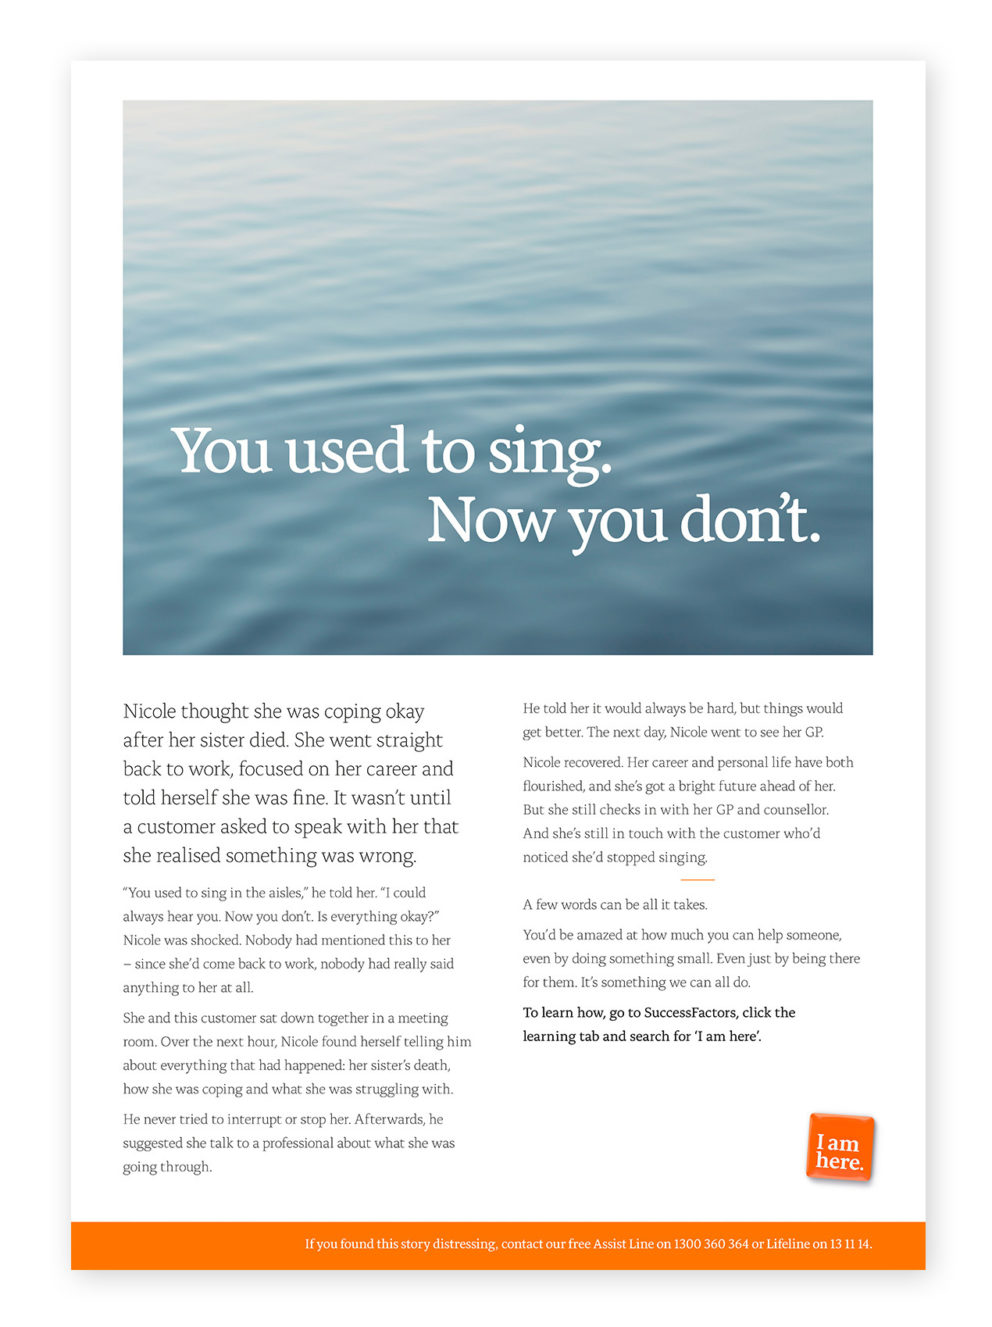 Woolworths Group - I am here Info Poster